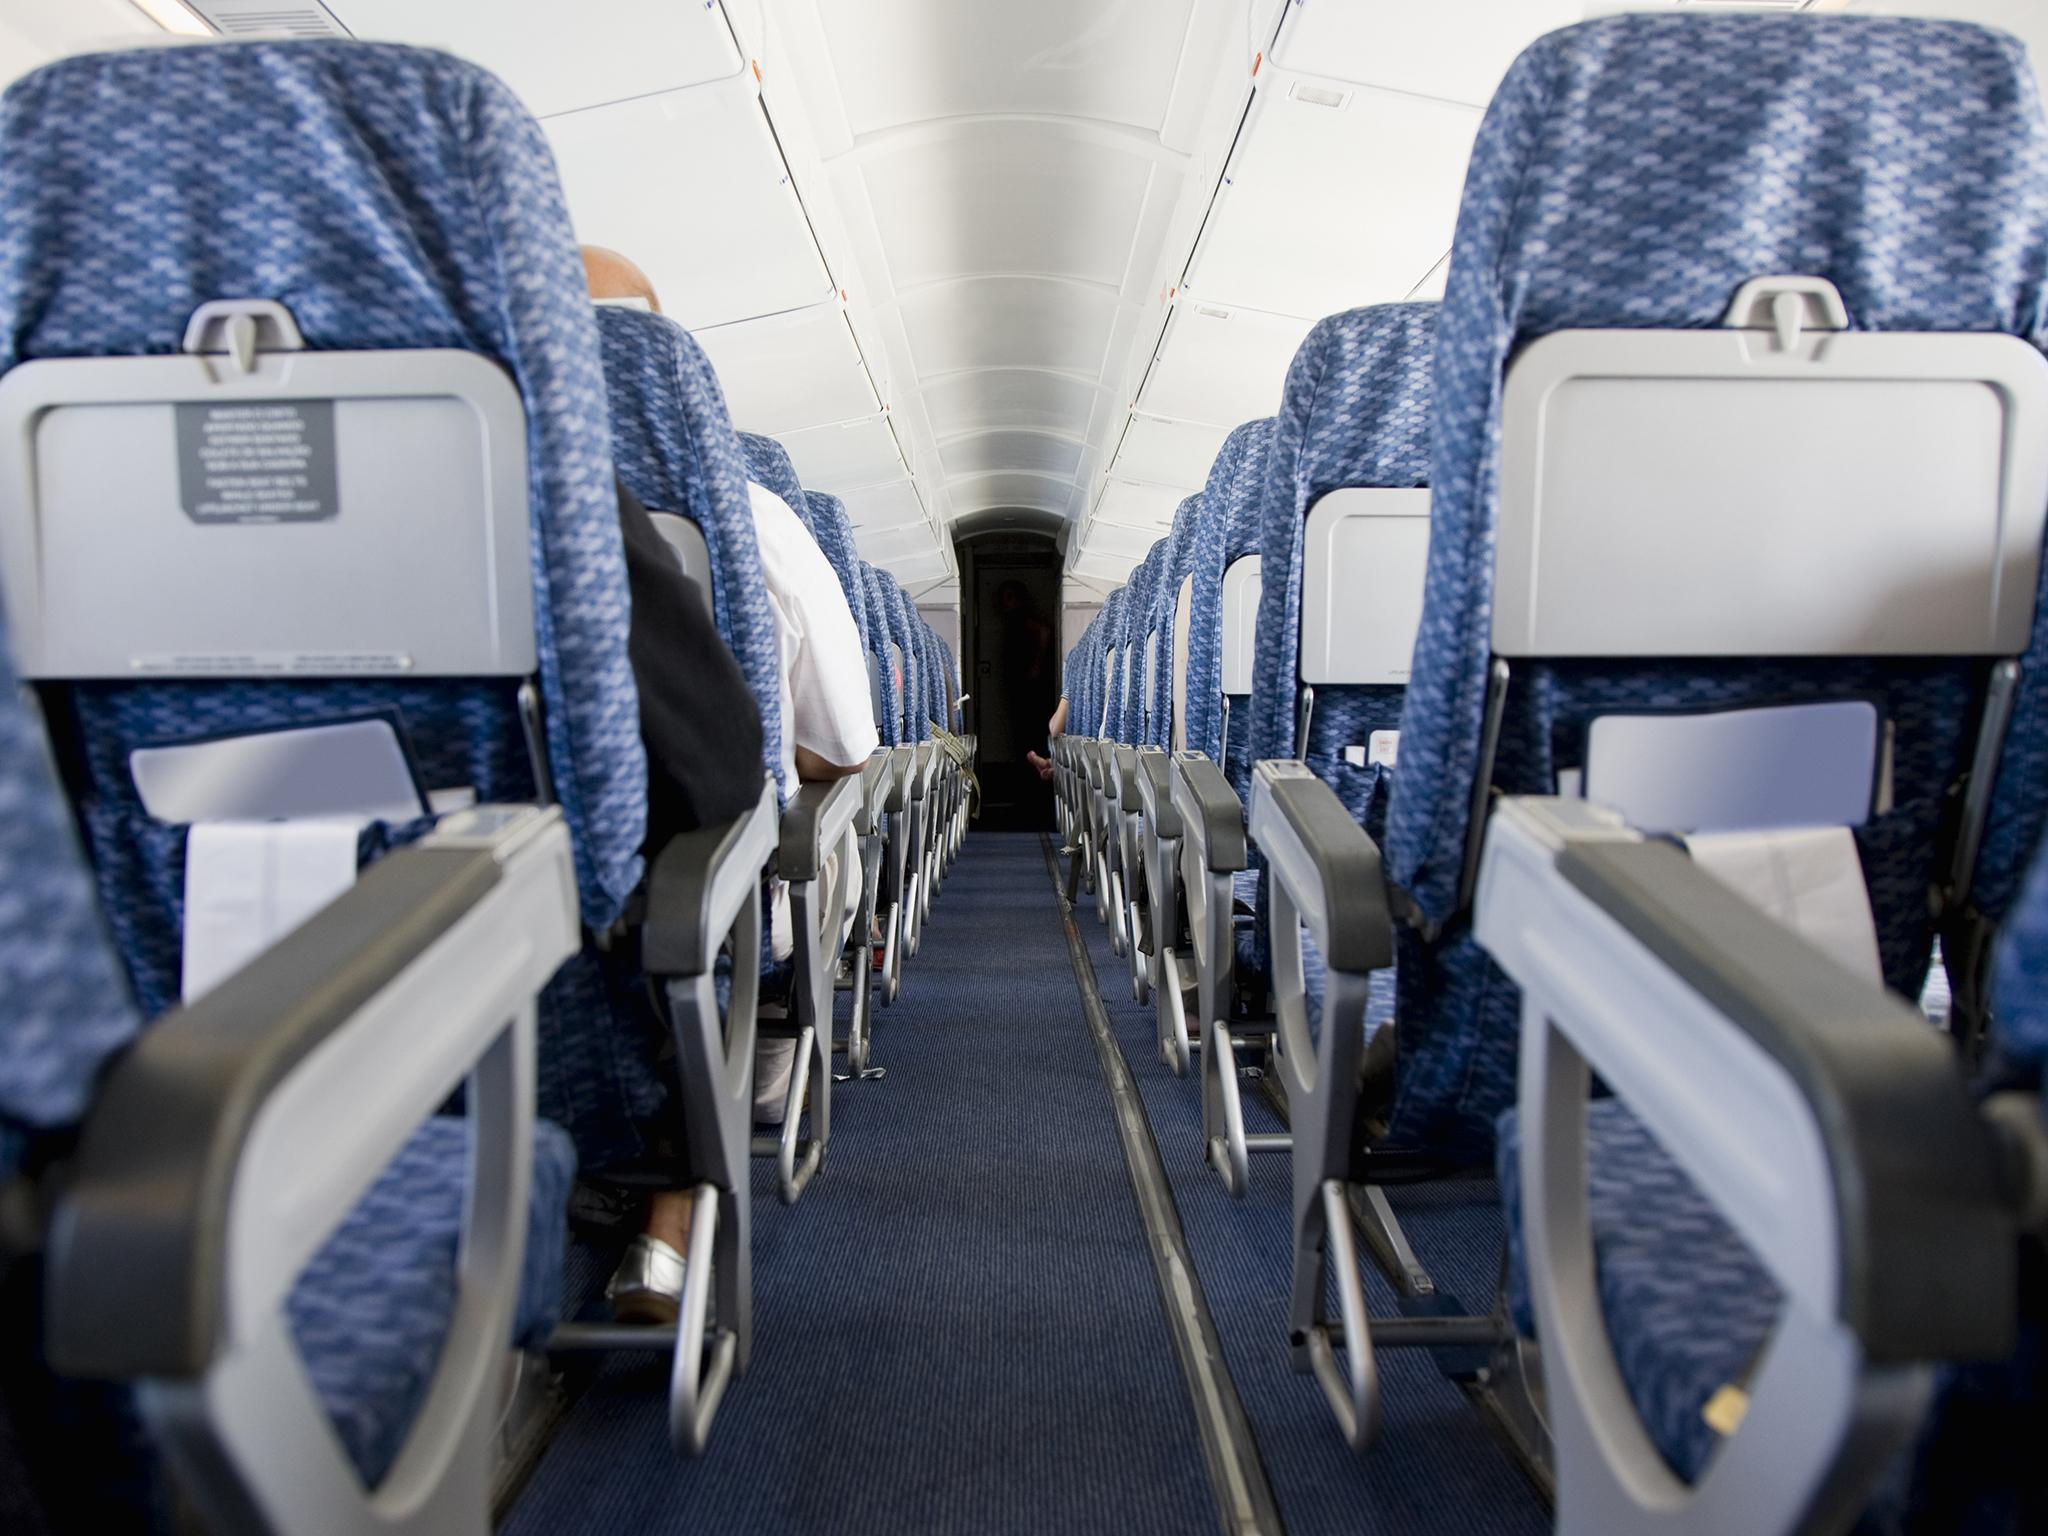 UK airline passengers 'wasting £175m a year choosing specific seats'